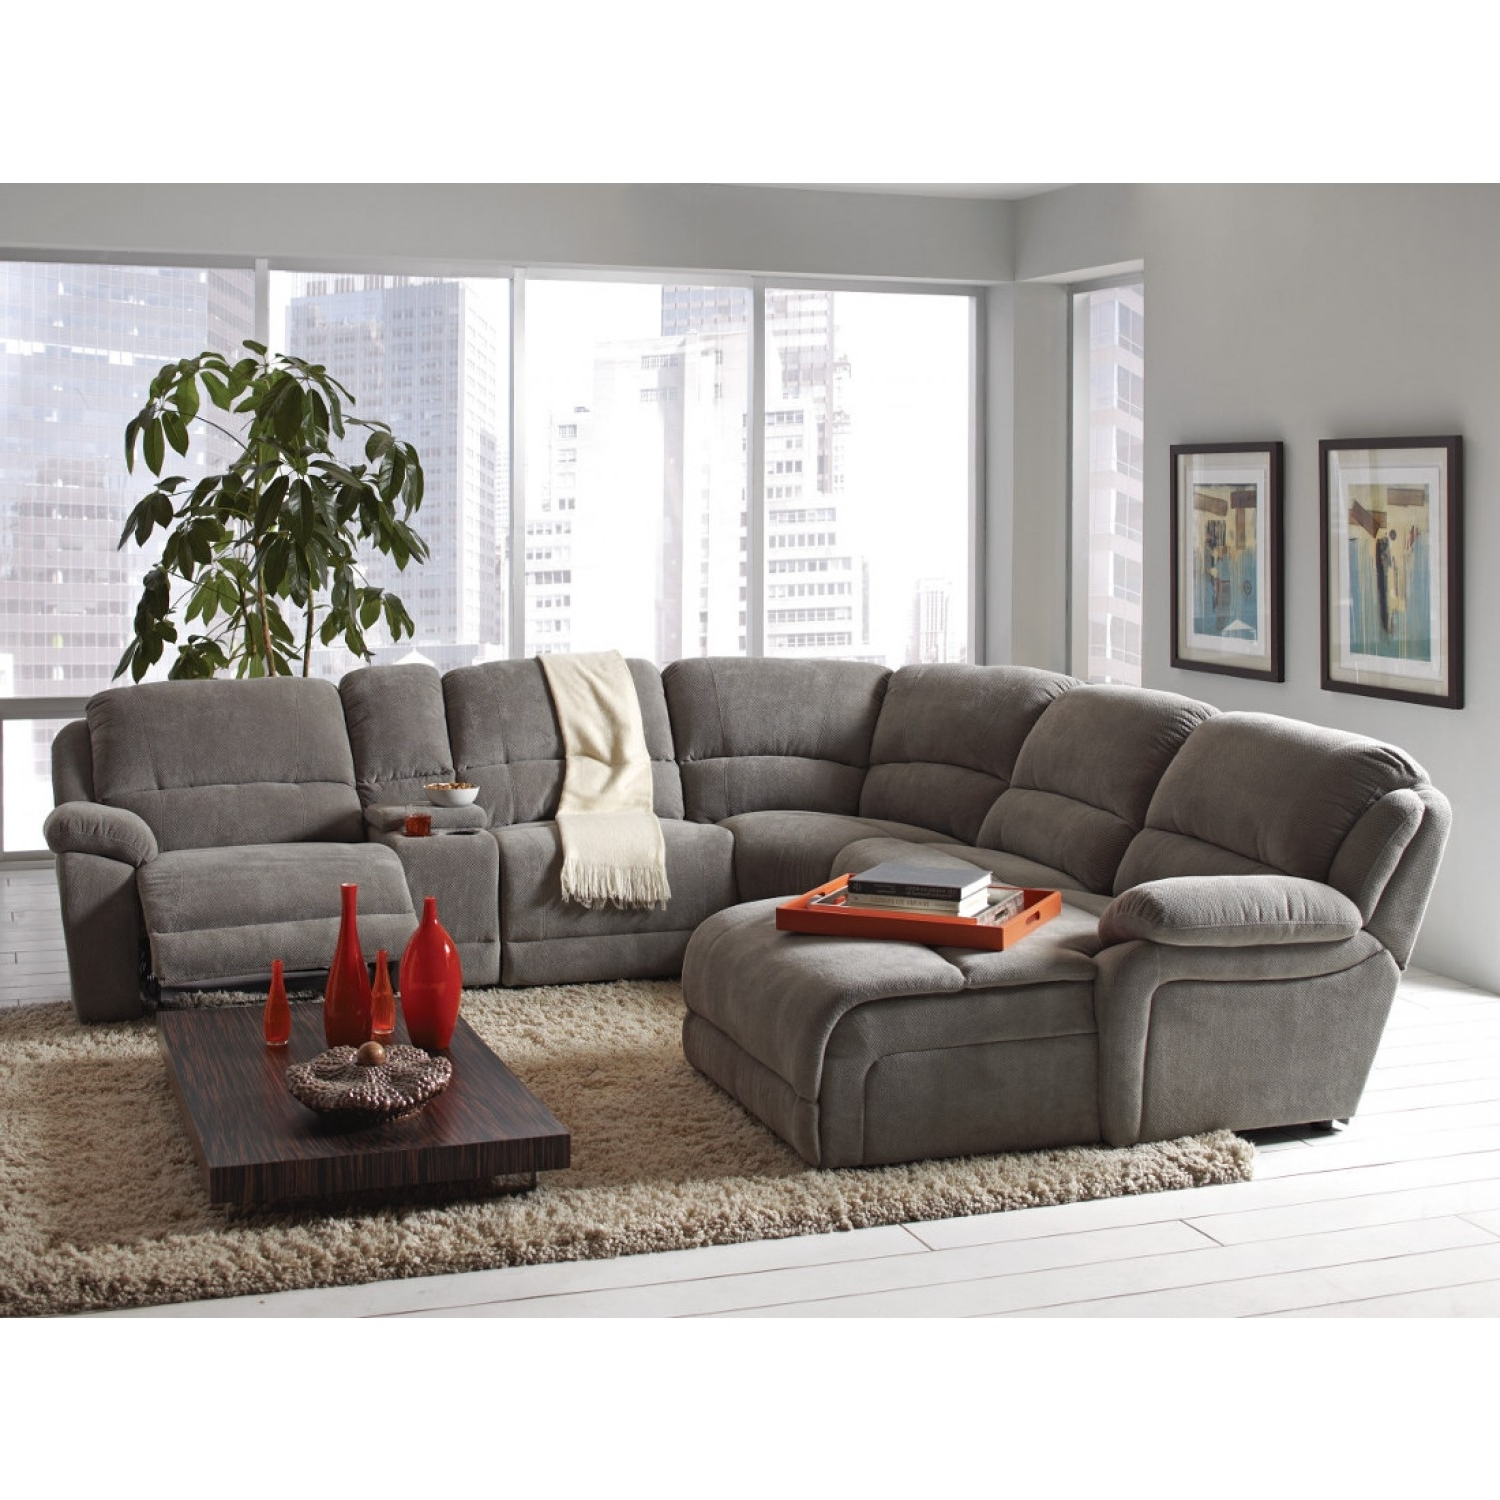 Most Recently Released Sectional Sofas That Come In Pieces Intended For Coaster Mackenzie Silver 6 Piece Reclining Sectional Sofa With (View 5 of 20)